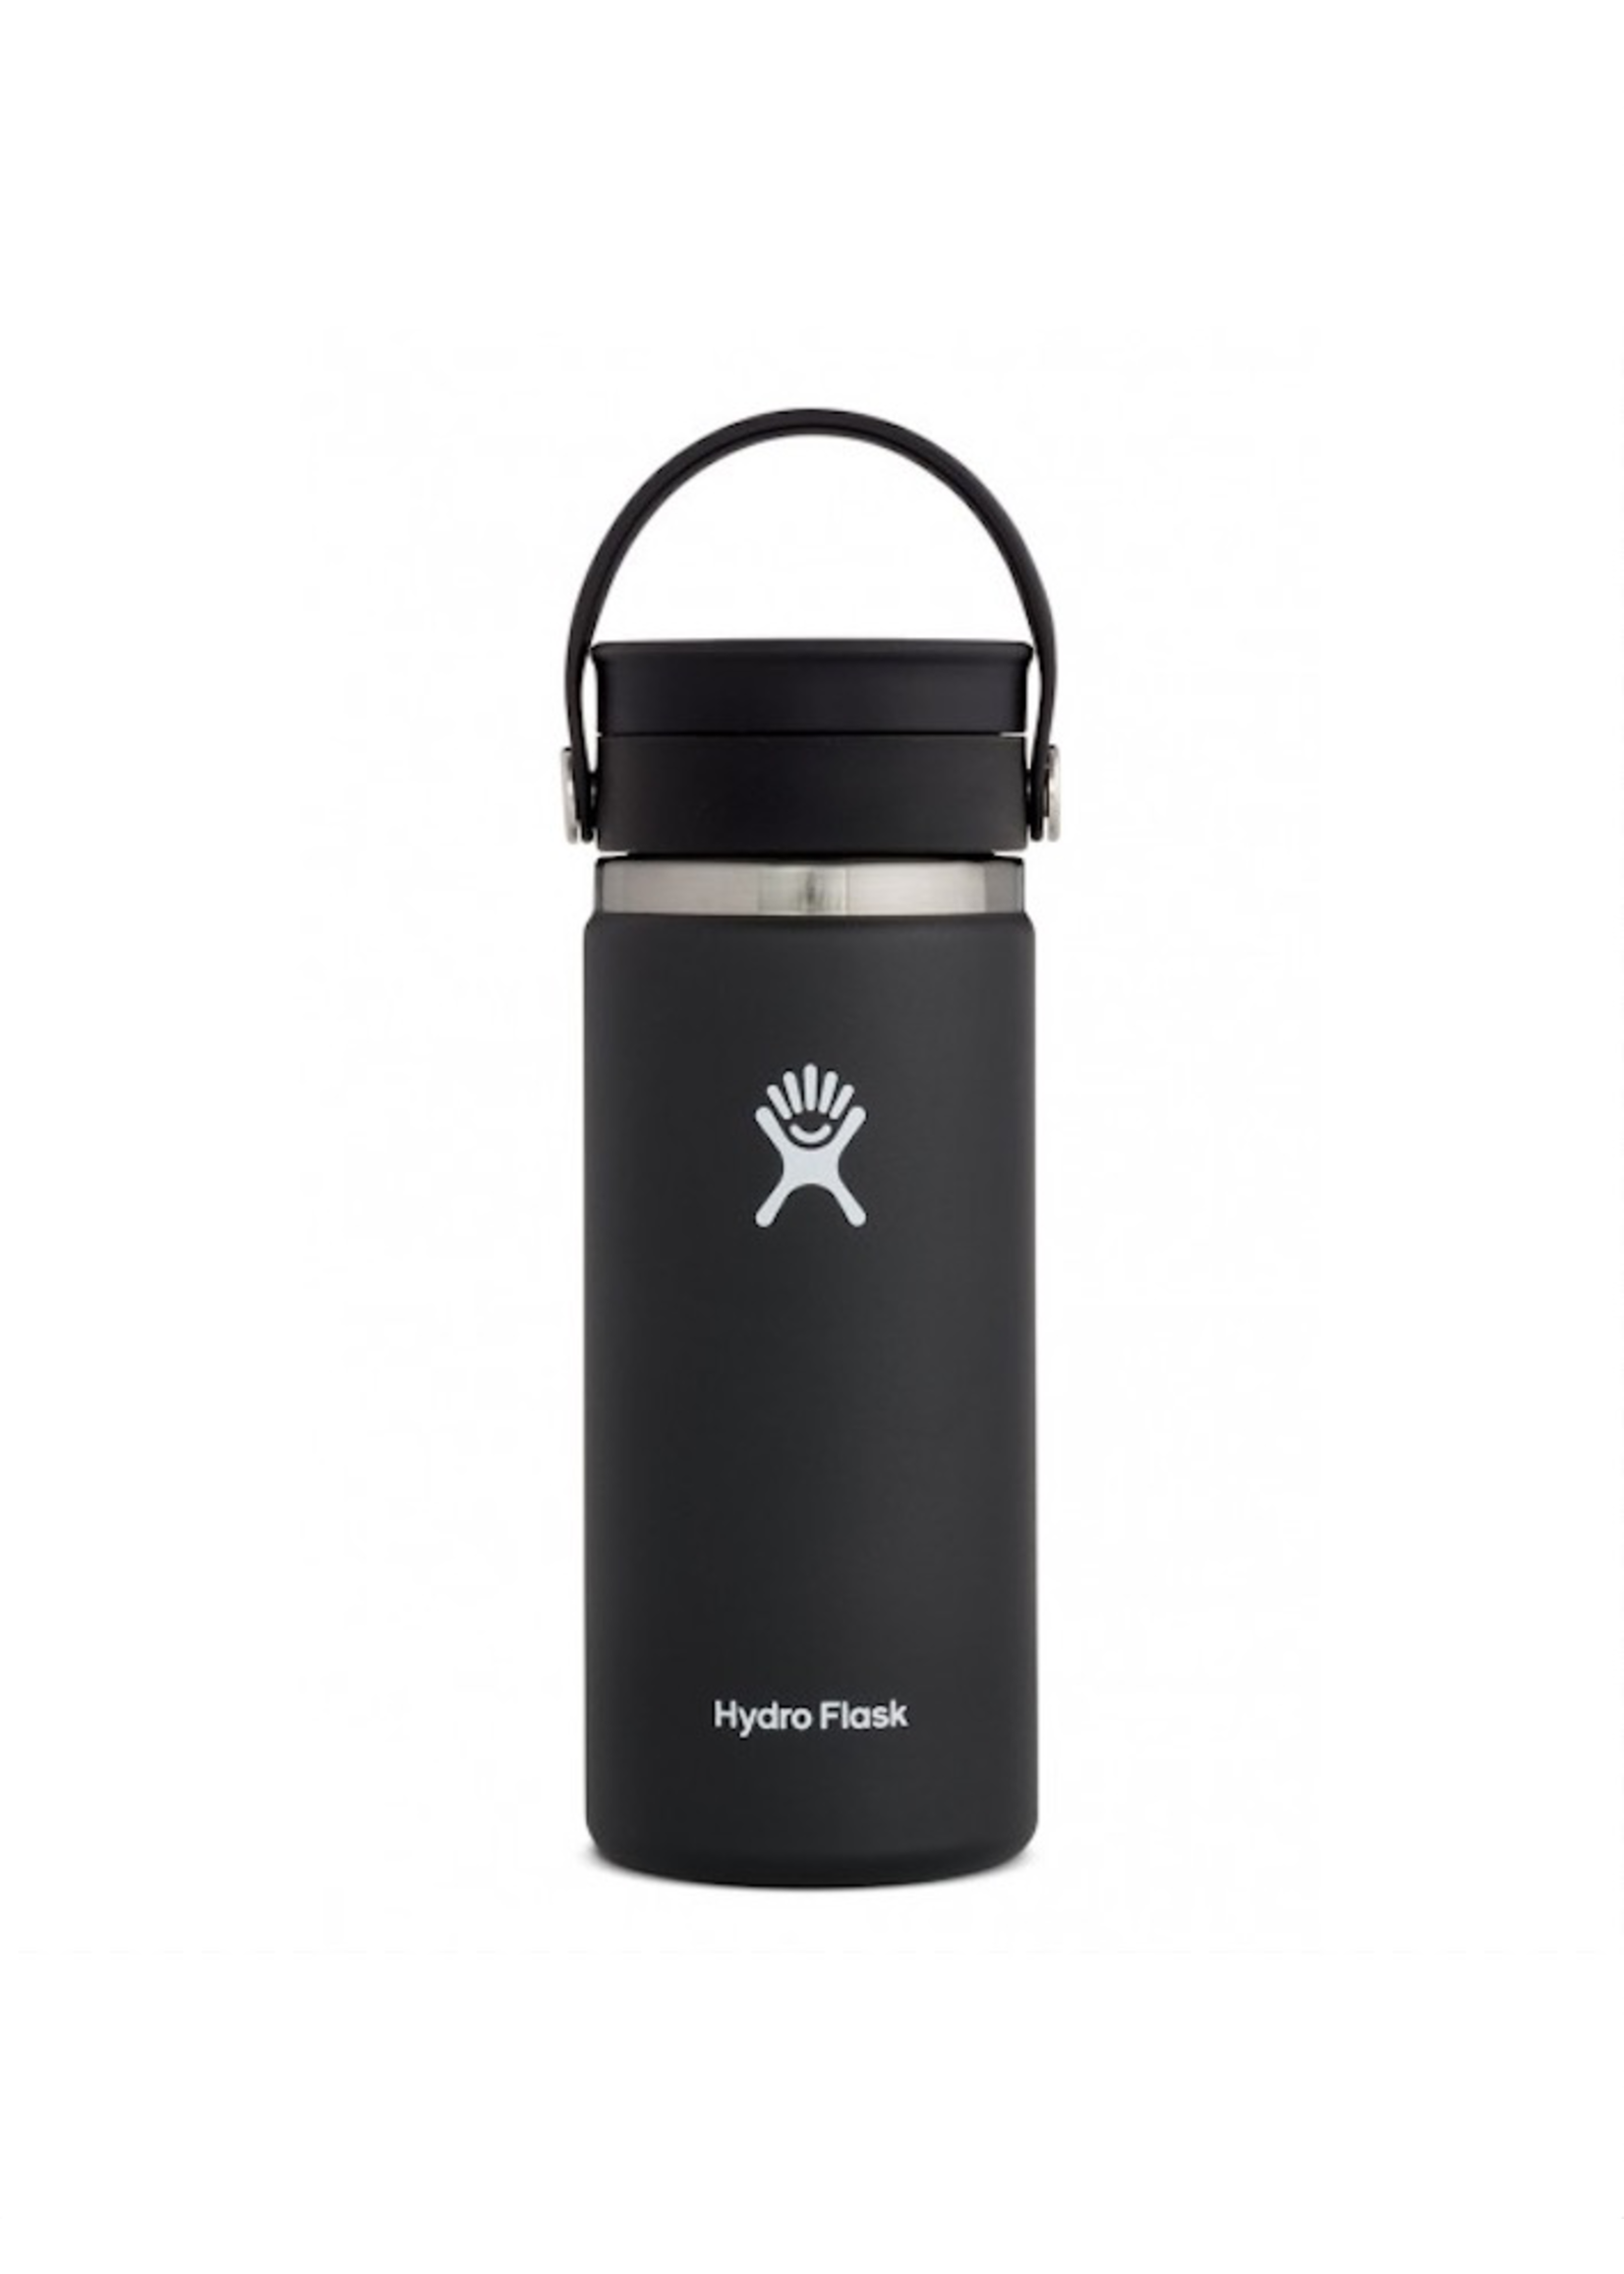 Hydro Flask Hydro Flask, 16 oz Wide Mouth  Flex Sip Lid Insulated Stainless Steel Bottle in Black